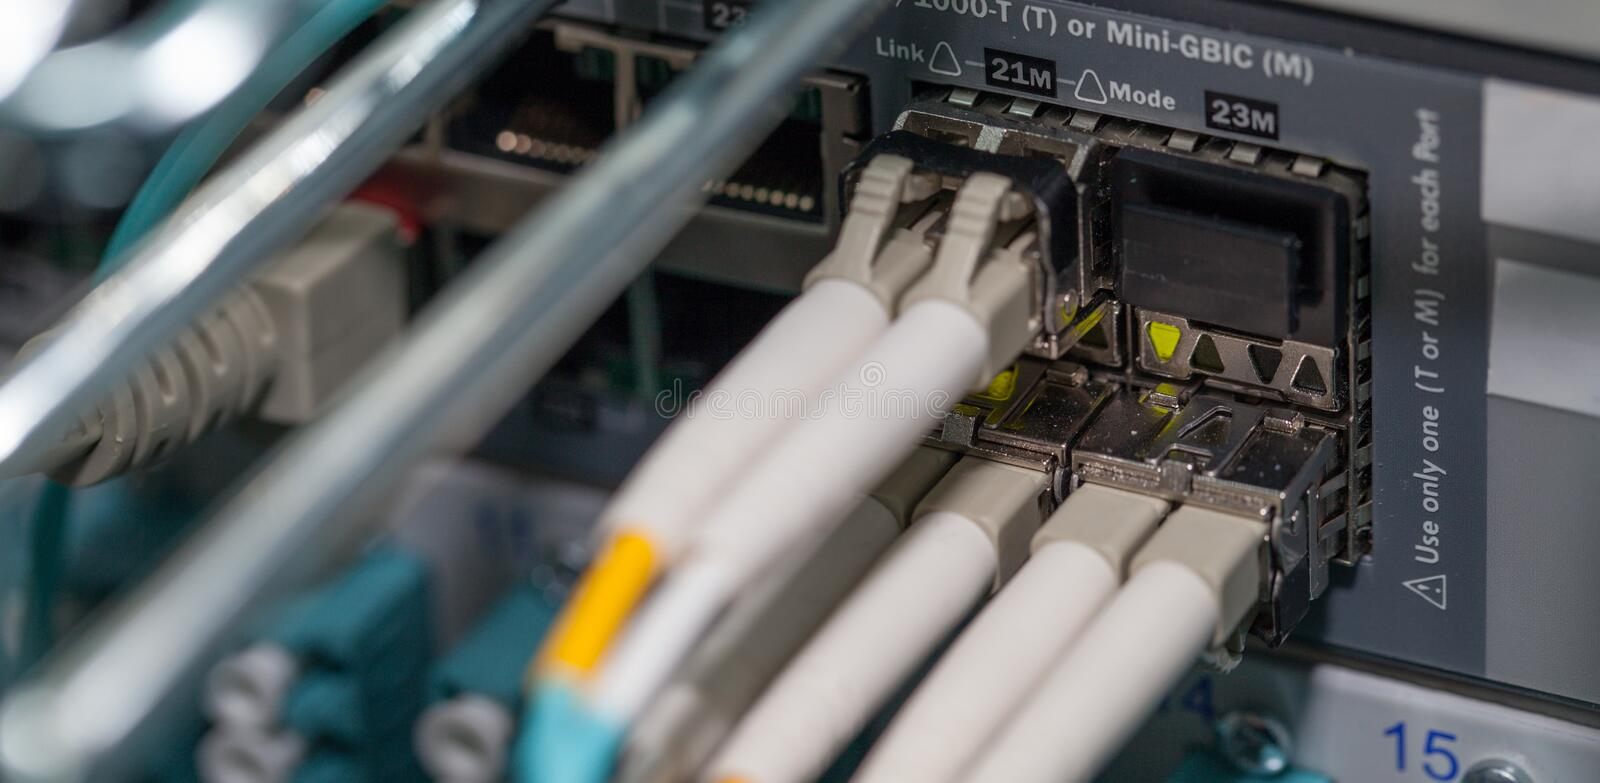 Optical fiber connection on the cloud network port server royalty free stock photography